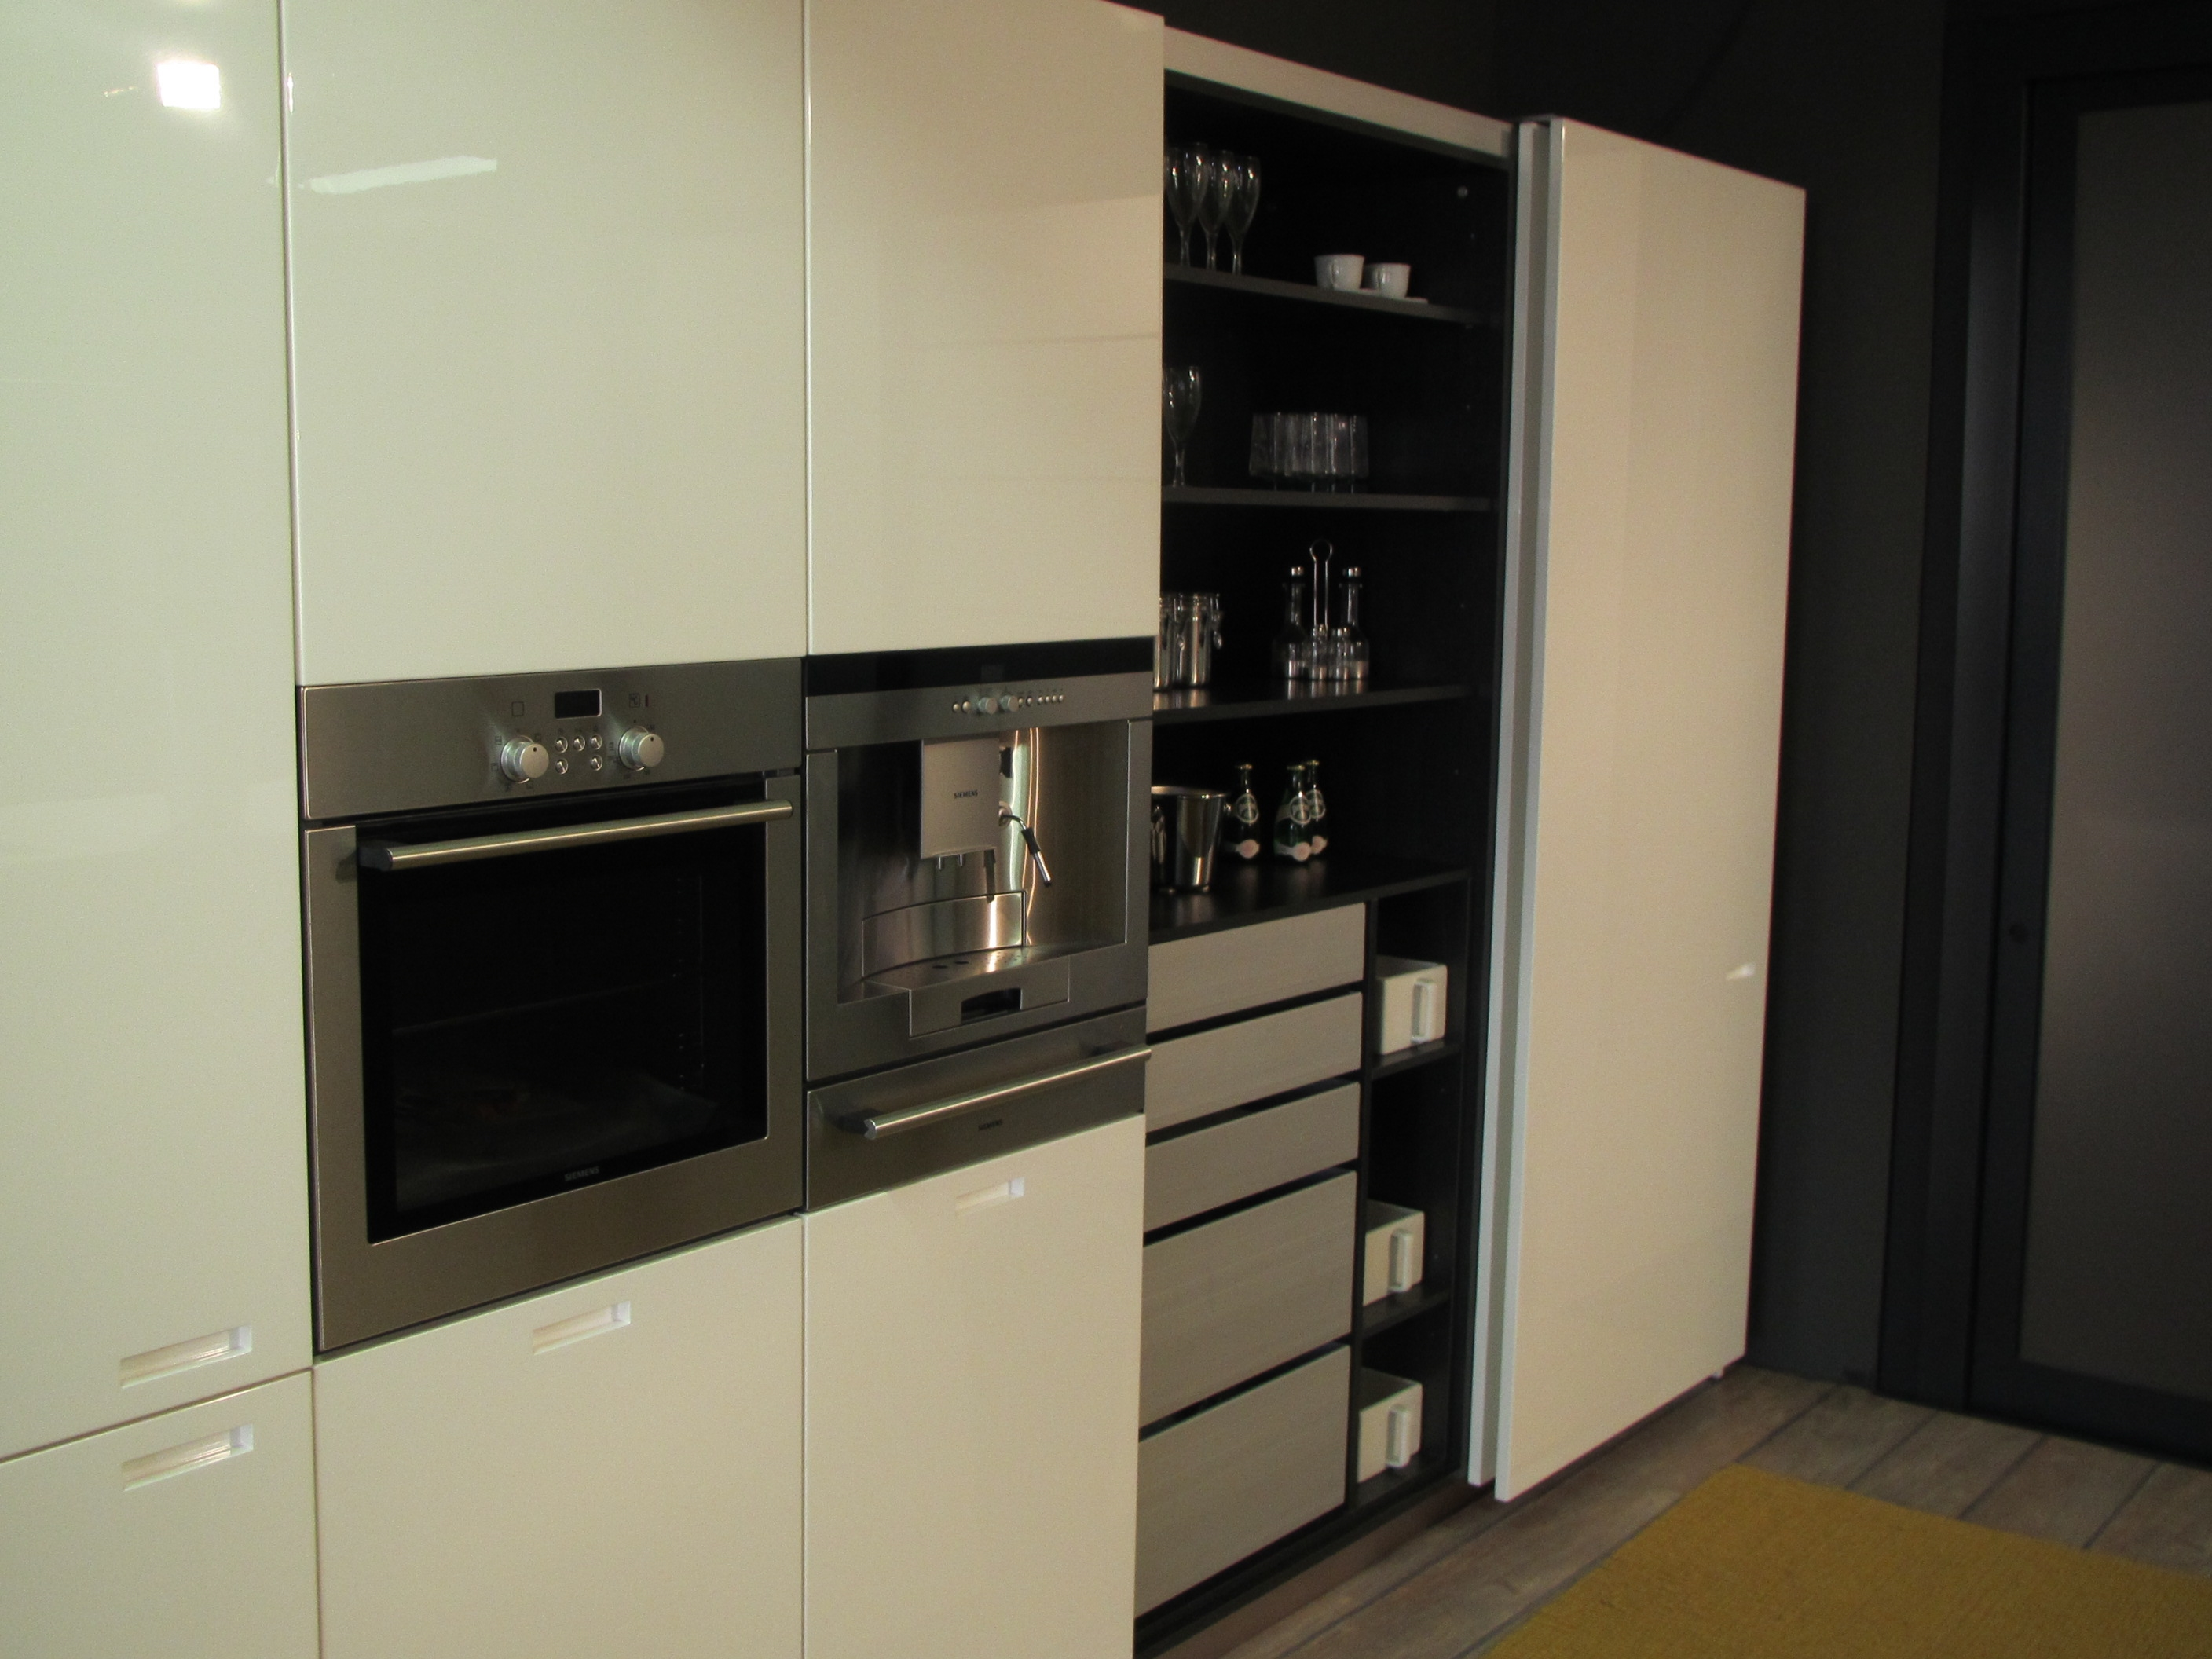 Awesome Cucine Dada Outlet Images - Skilifts.us - skilifts.us